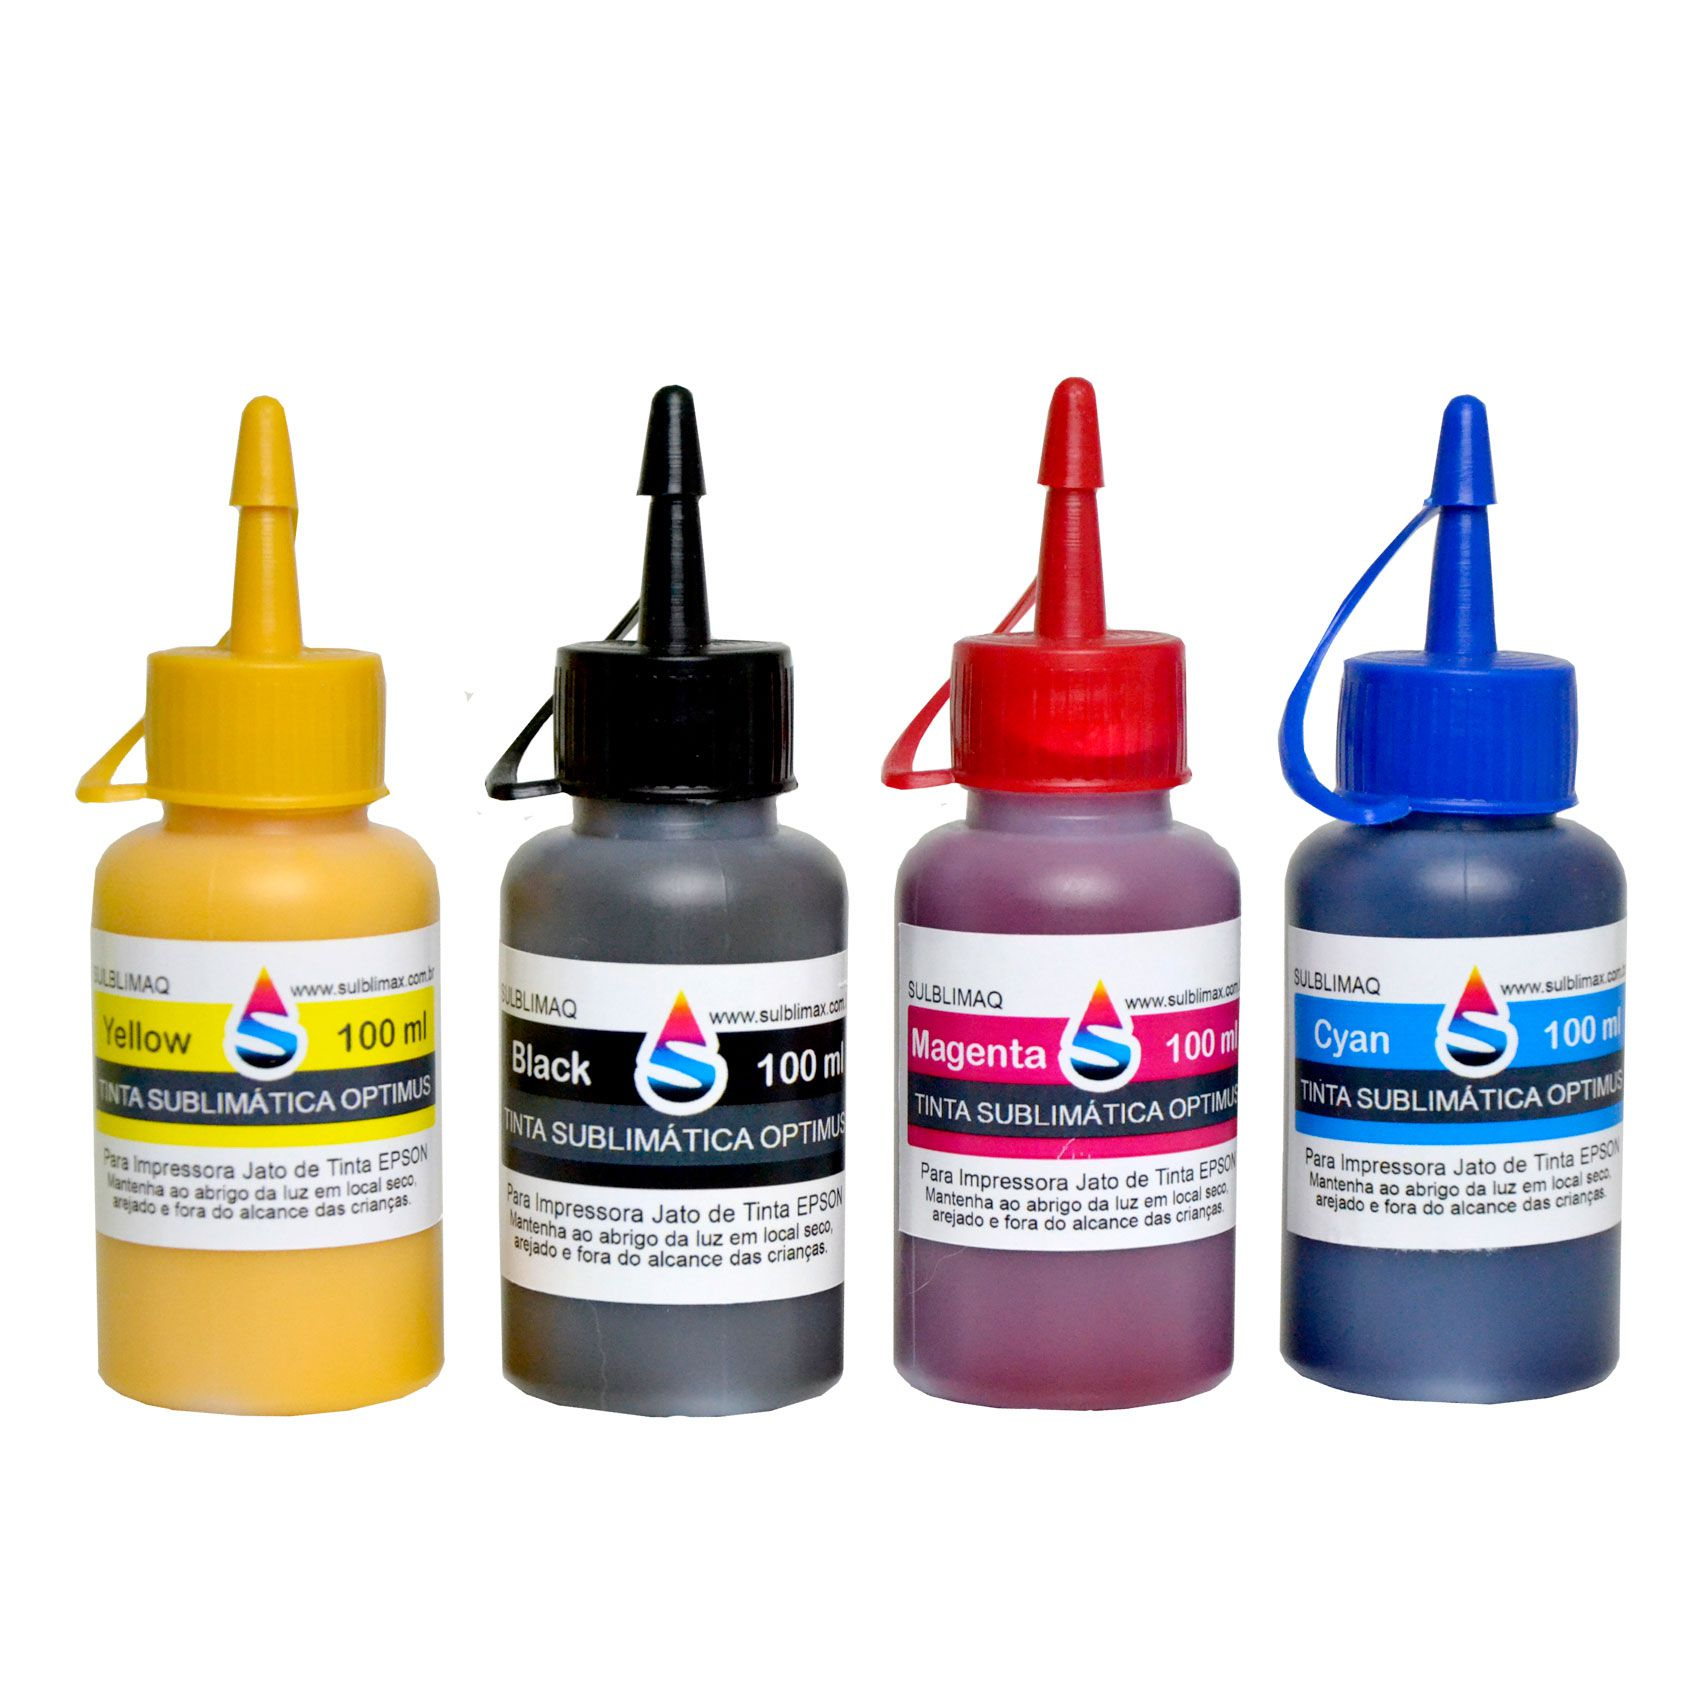 Tinta Sublimatica Optimus - BM Chemical